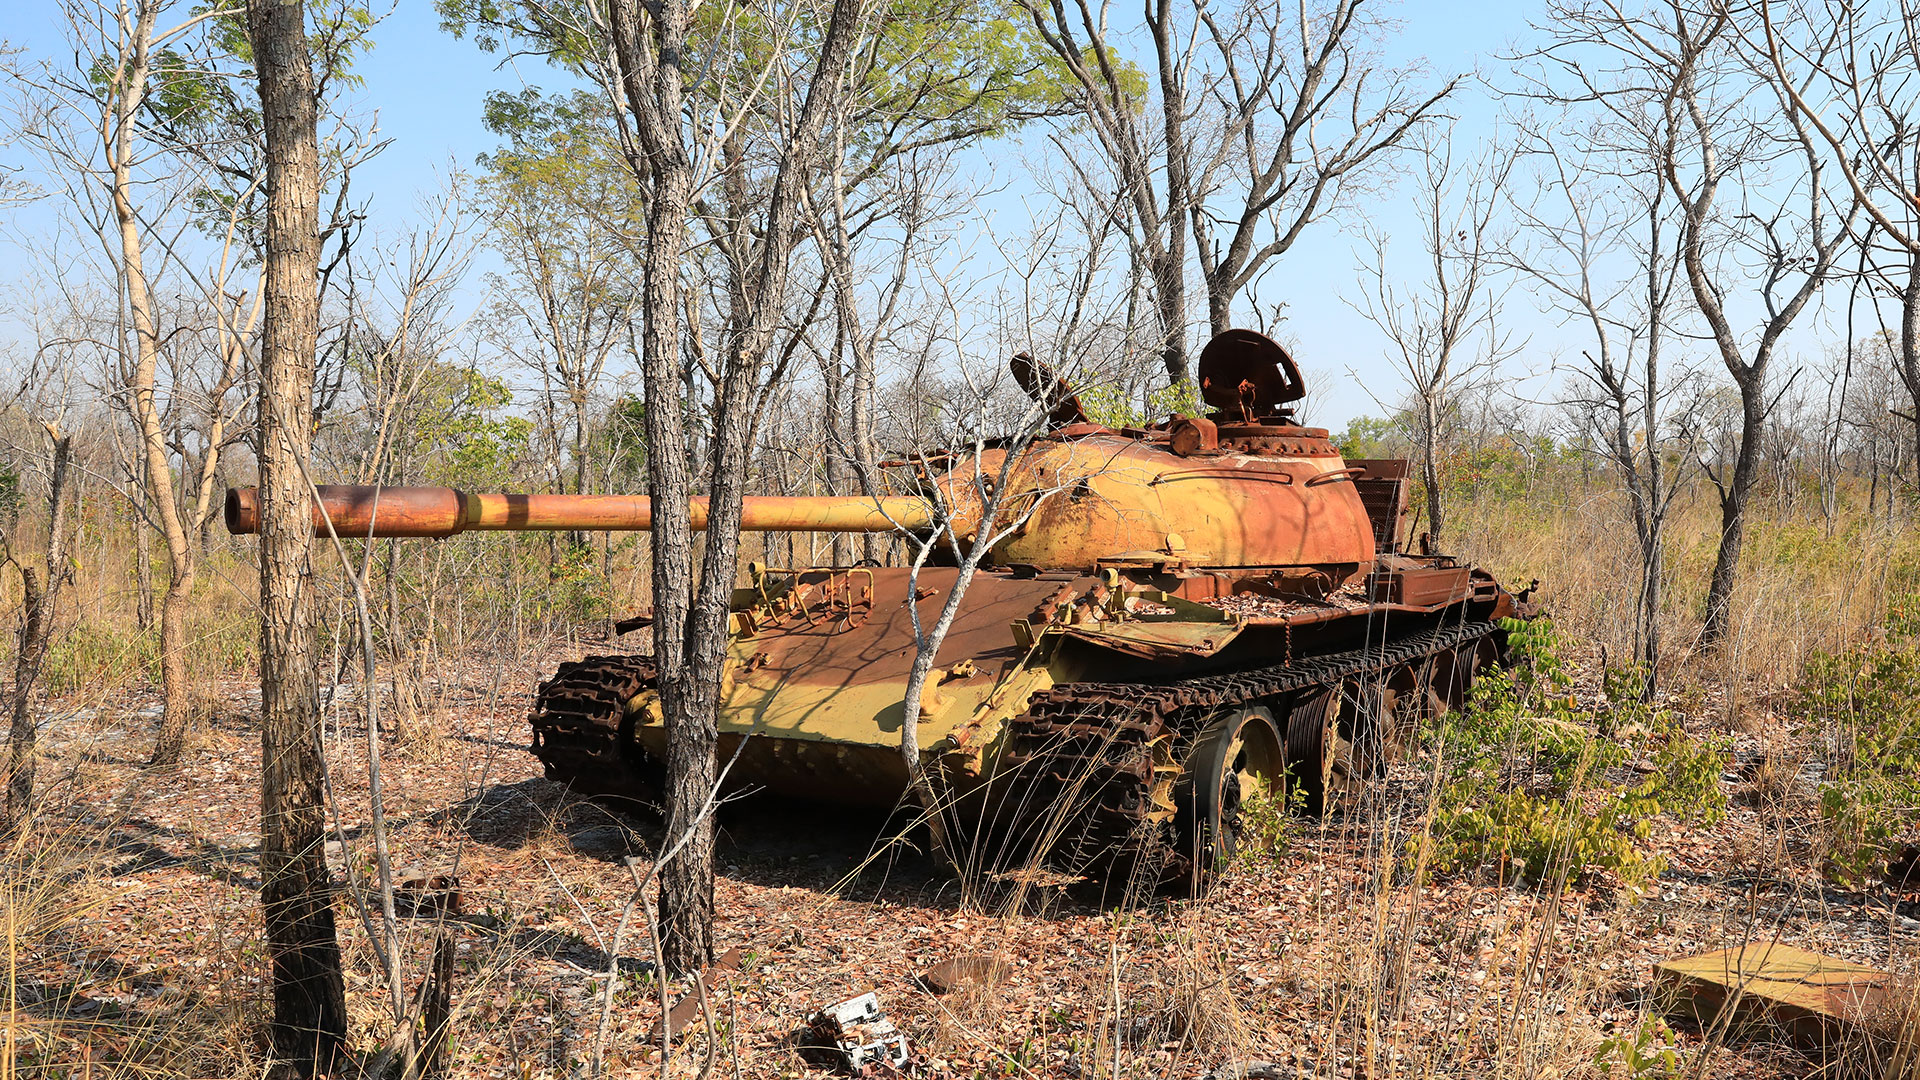 An abandoned tank on the Cuito Cuanavale Battlefield, Angola